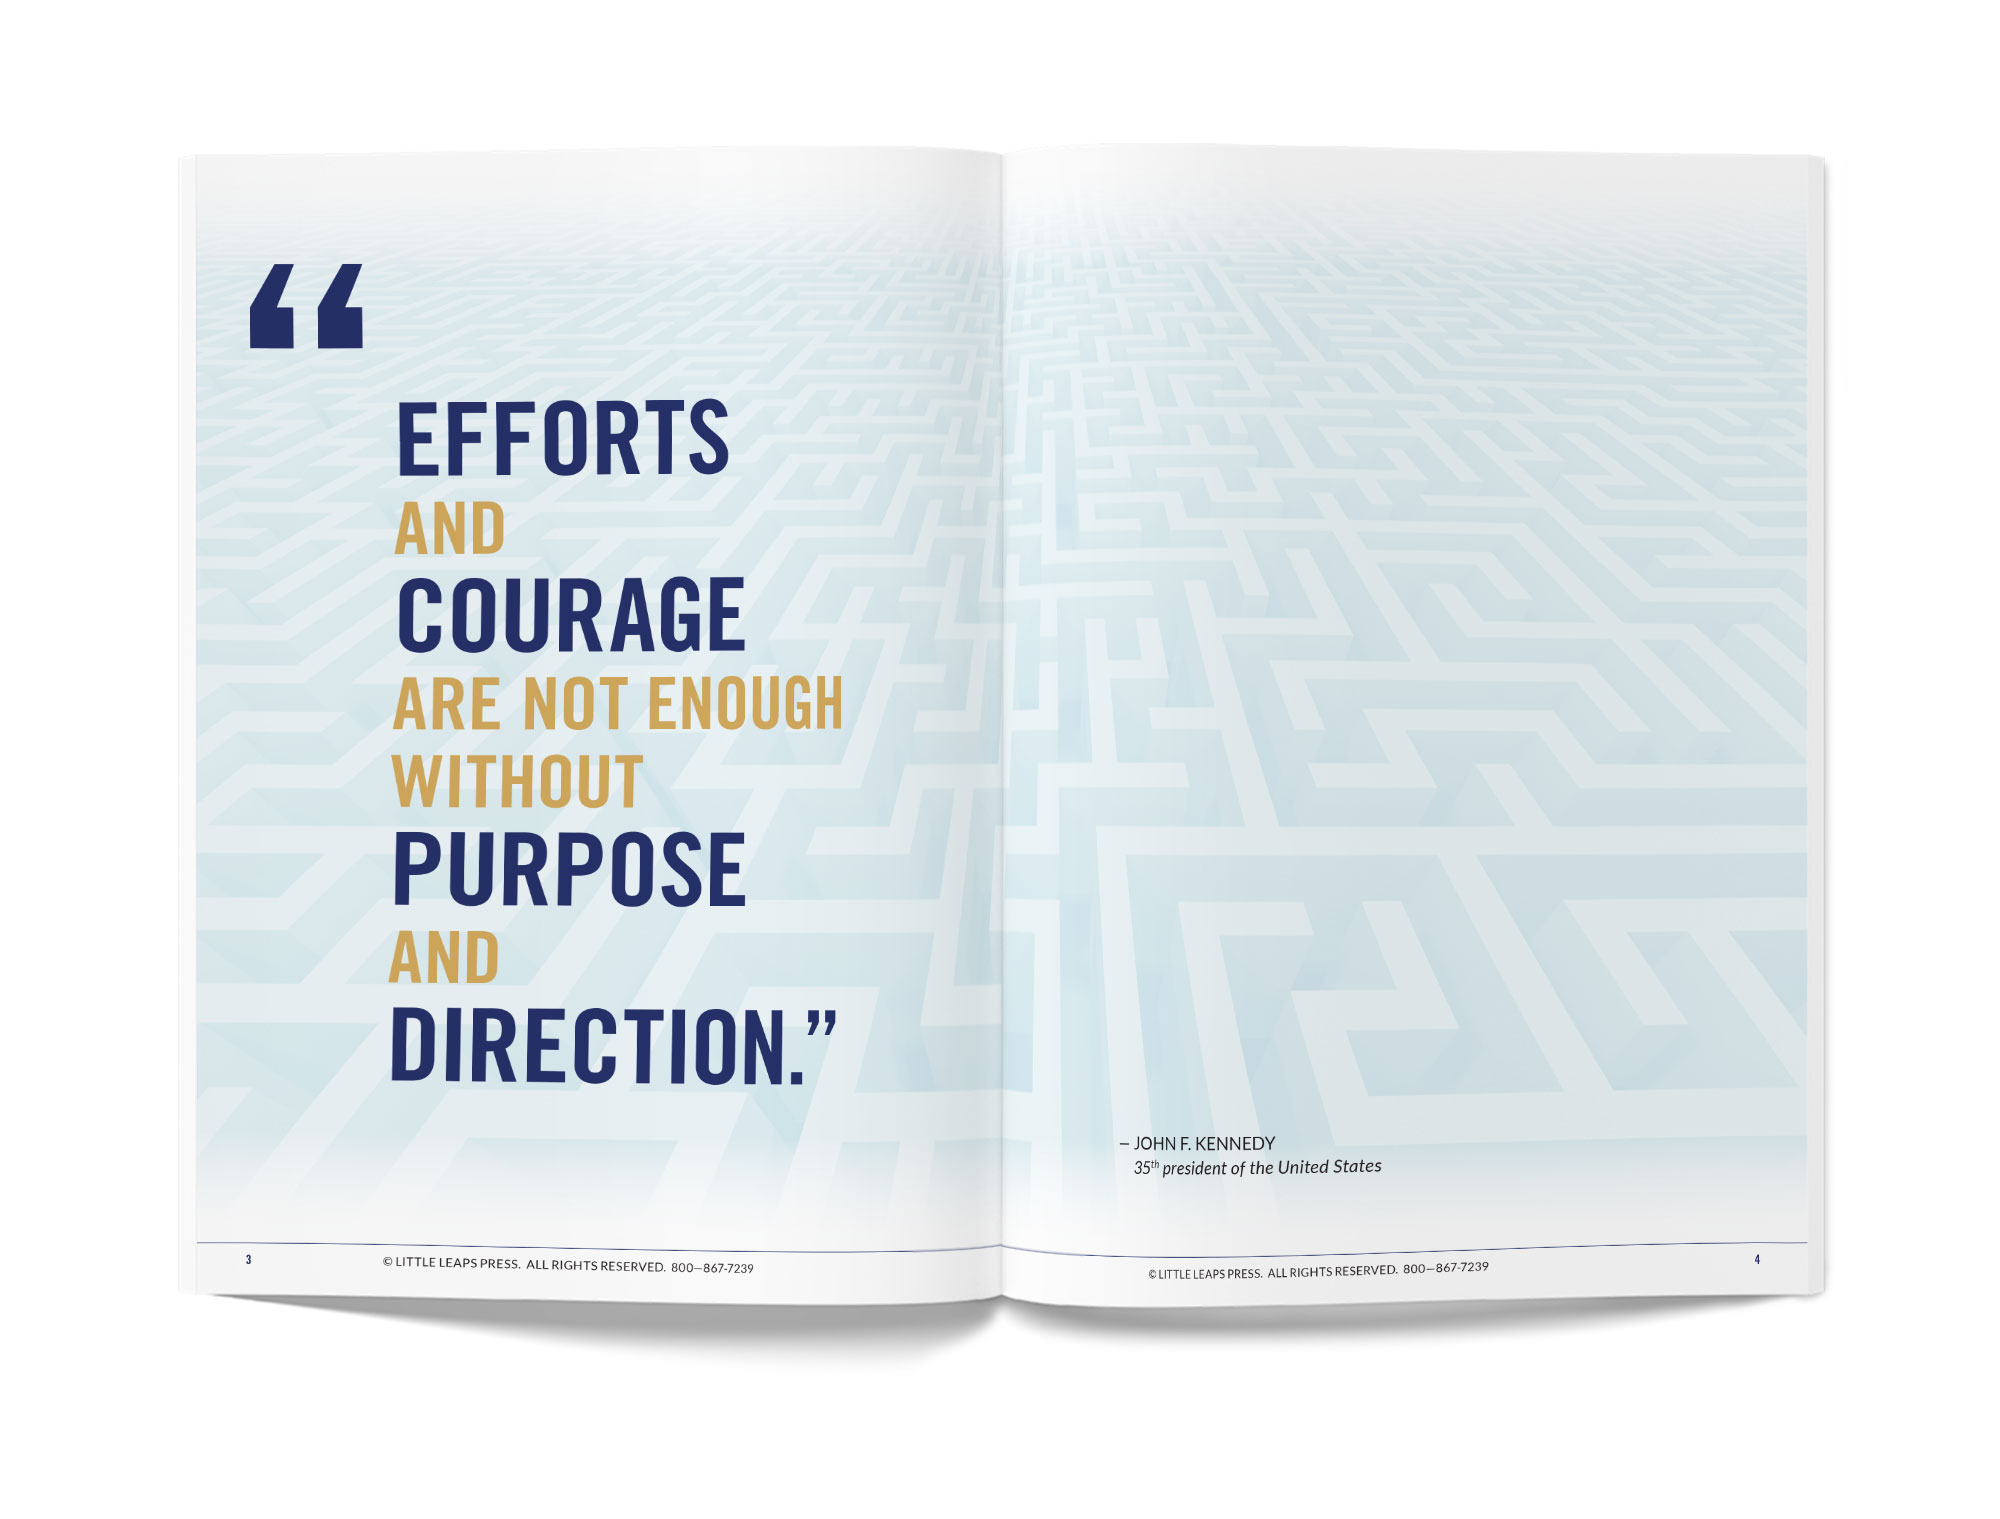 giant-leap-consulting-workbook-layout-design-7.jpg